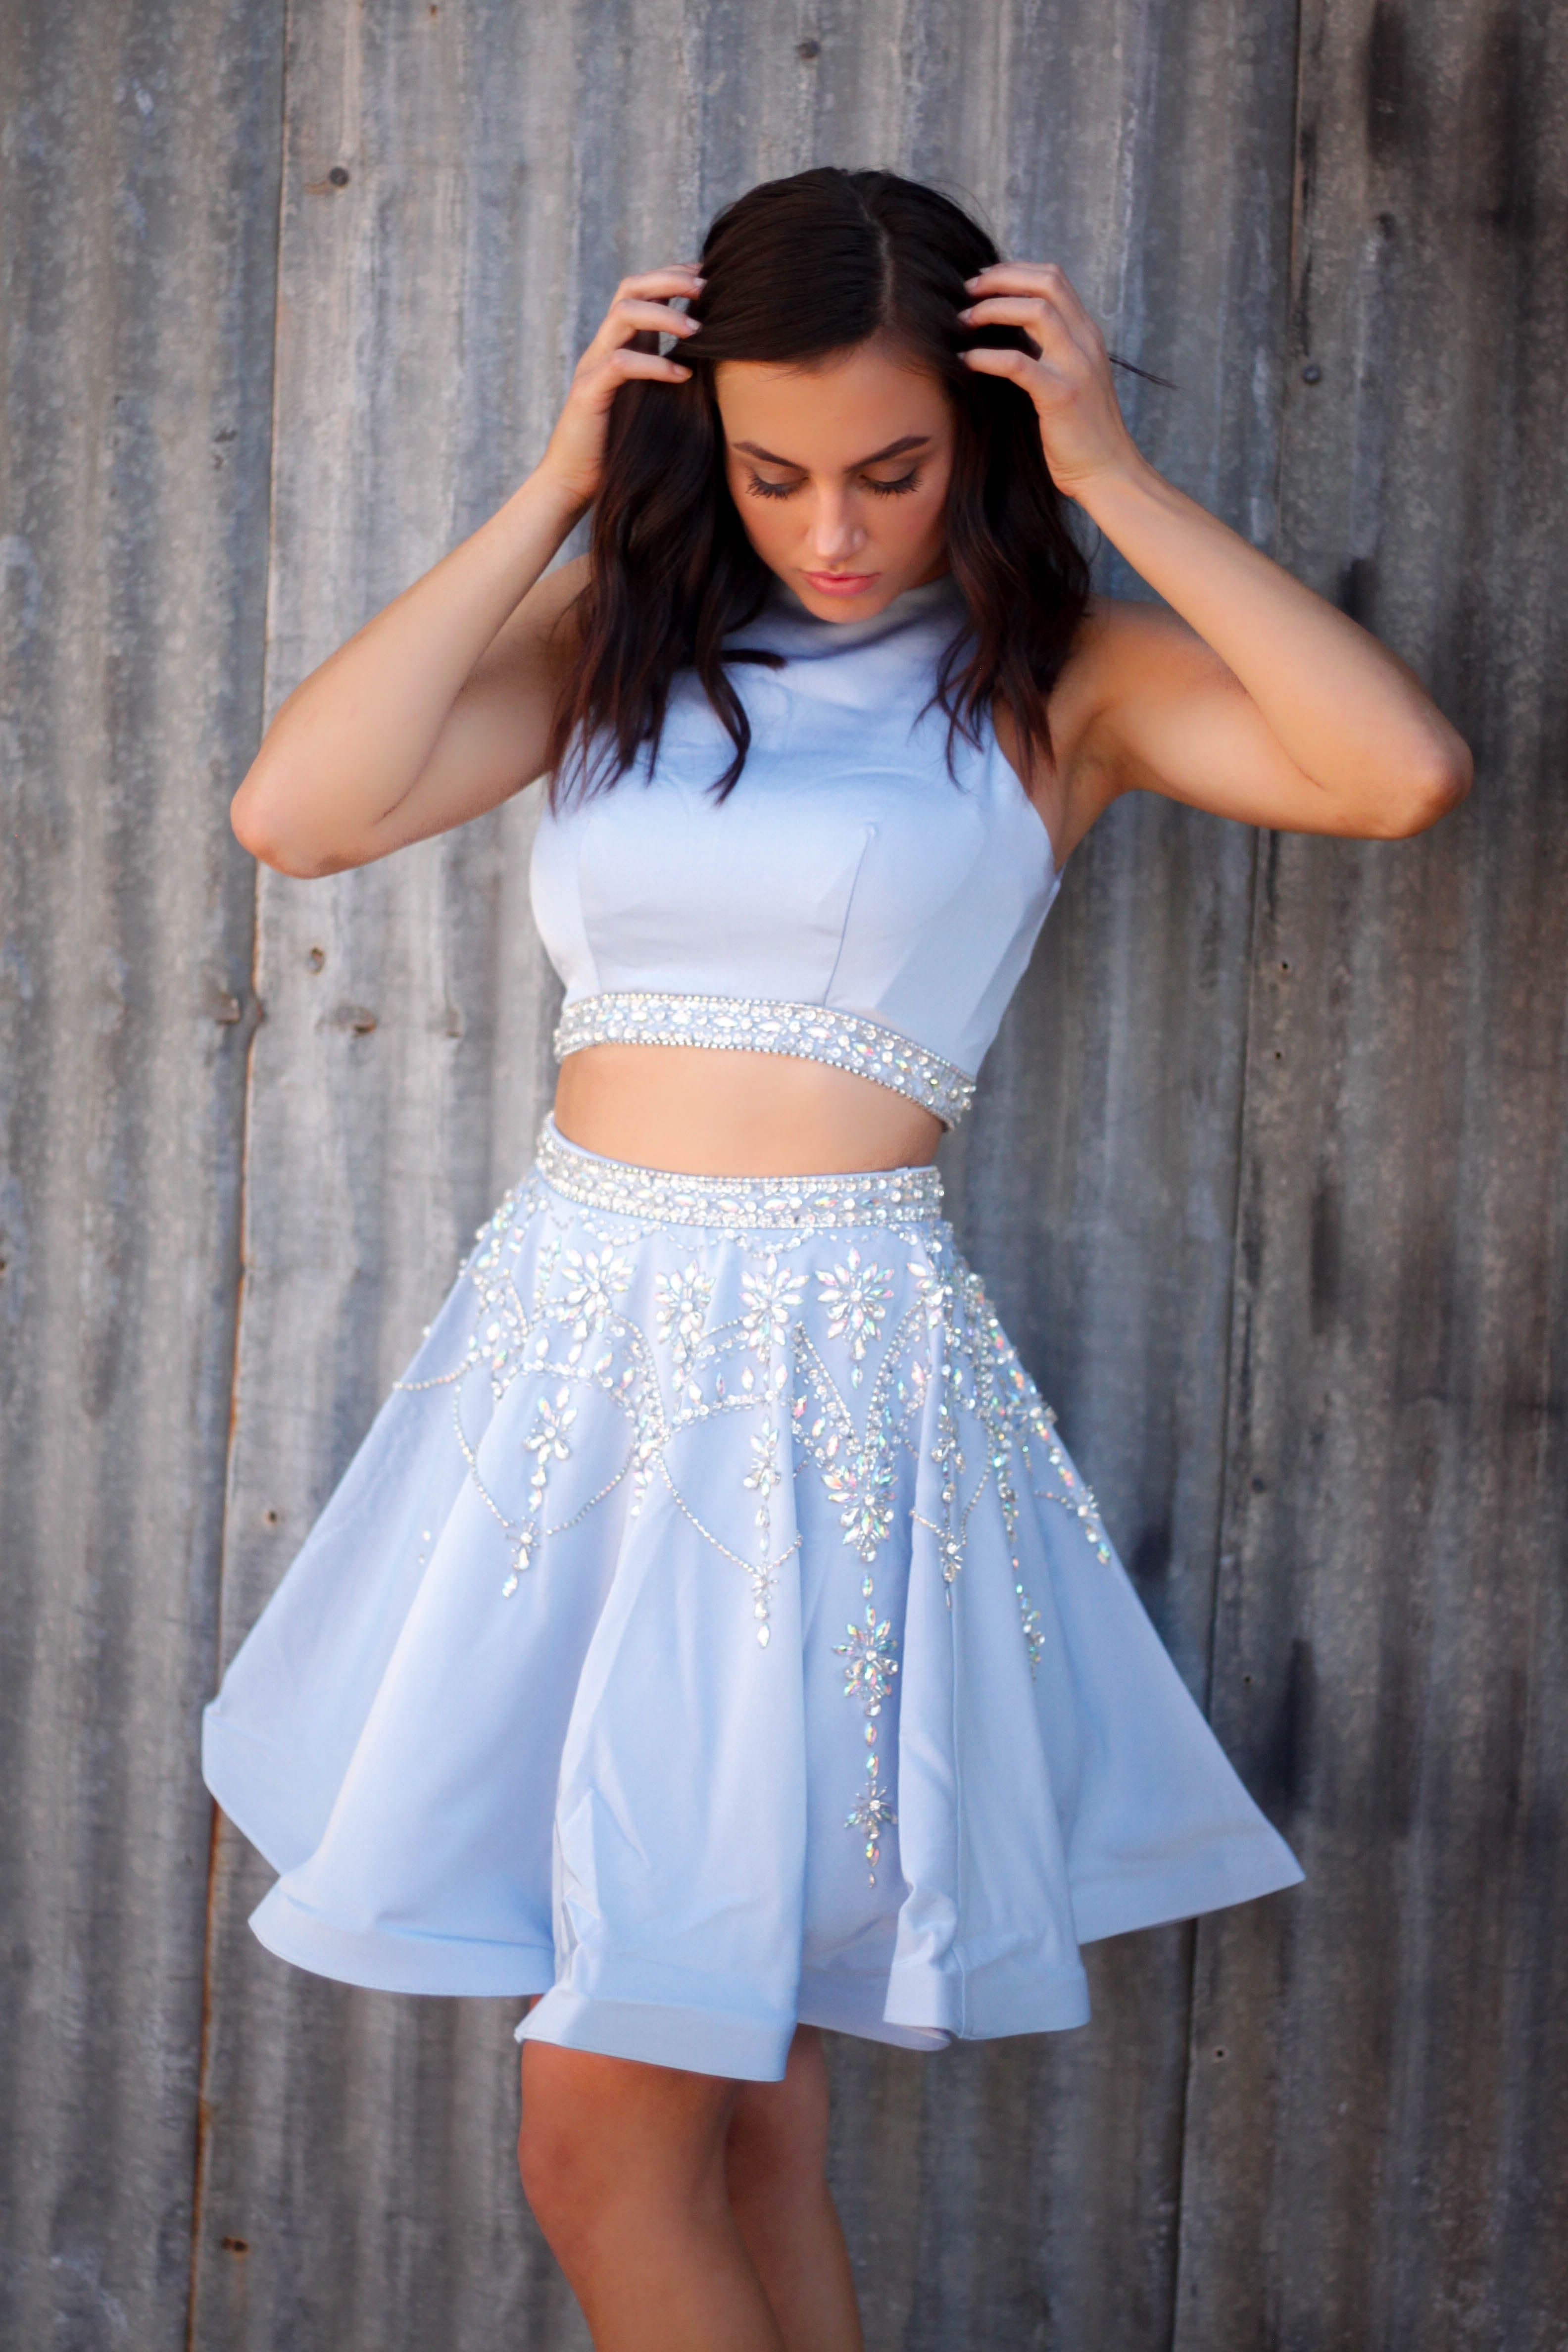 Pin By Jaymeepperson On Dresses Blue Dress Short Light Blue Dress Short Piece Prom Dress [ 4752 x 3168 Pixel ]